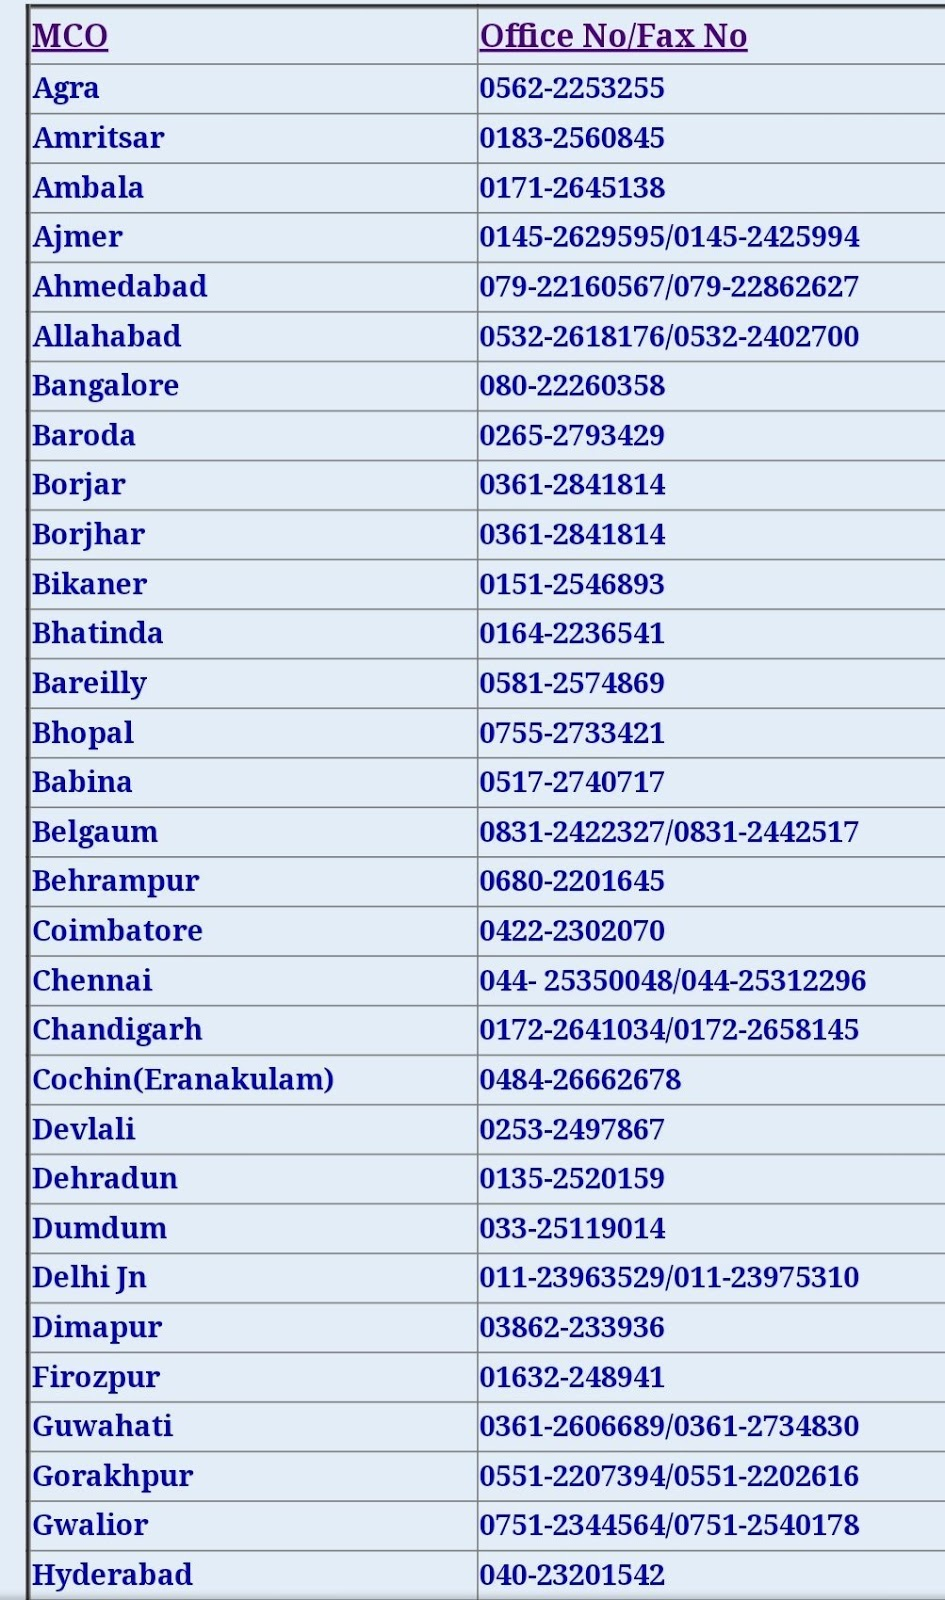 Updated MCO Contact Information Phone and Fax number of all